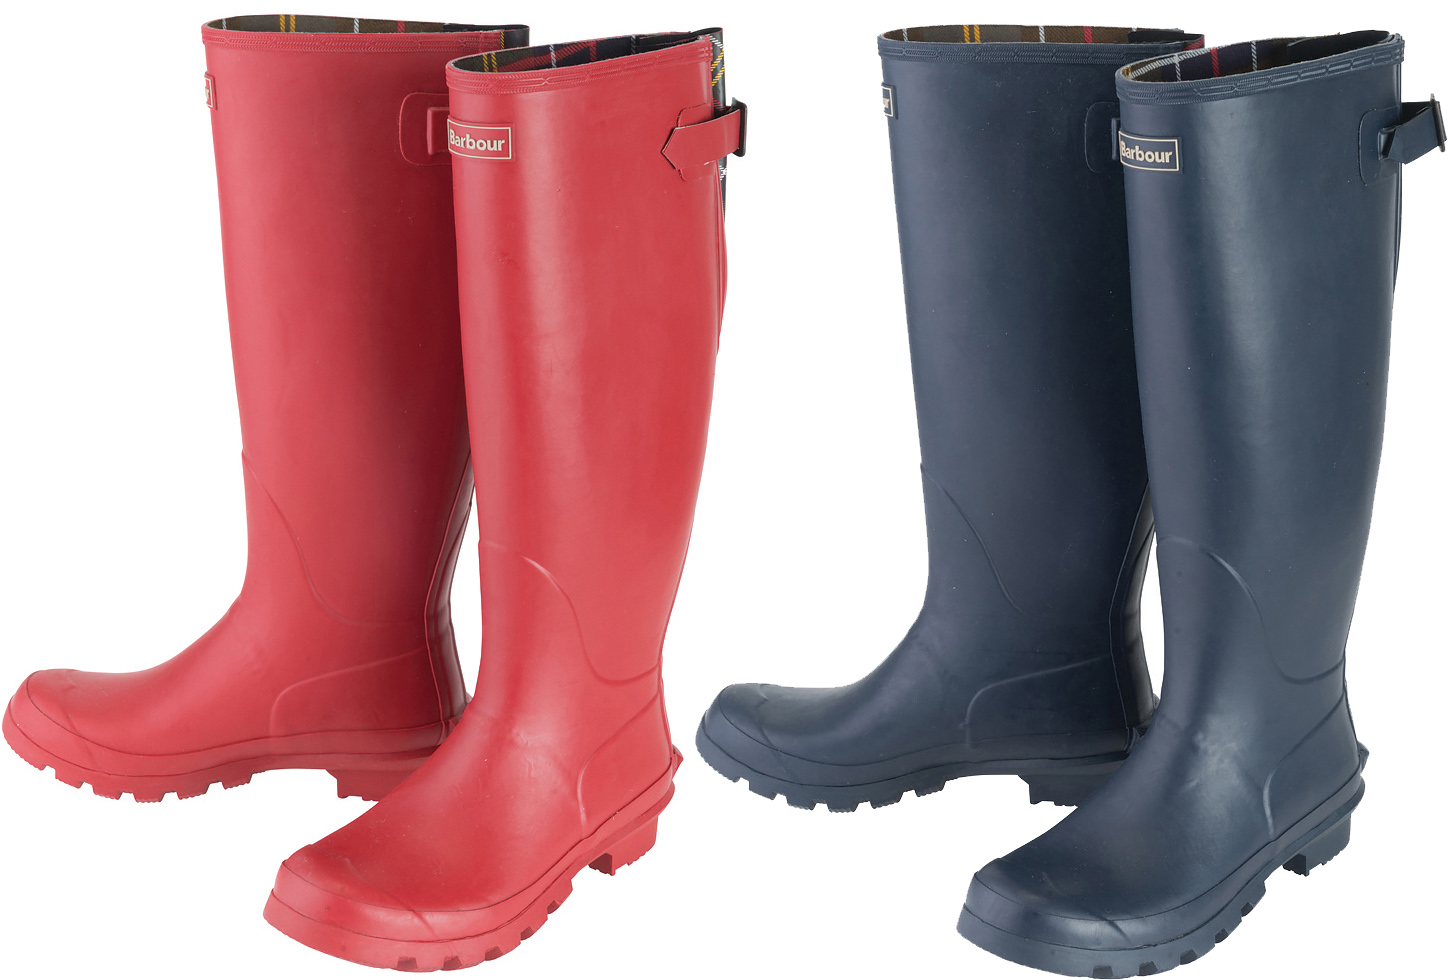 Barbour Jarrow Wellington Boots at Philip Morris and Son